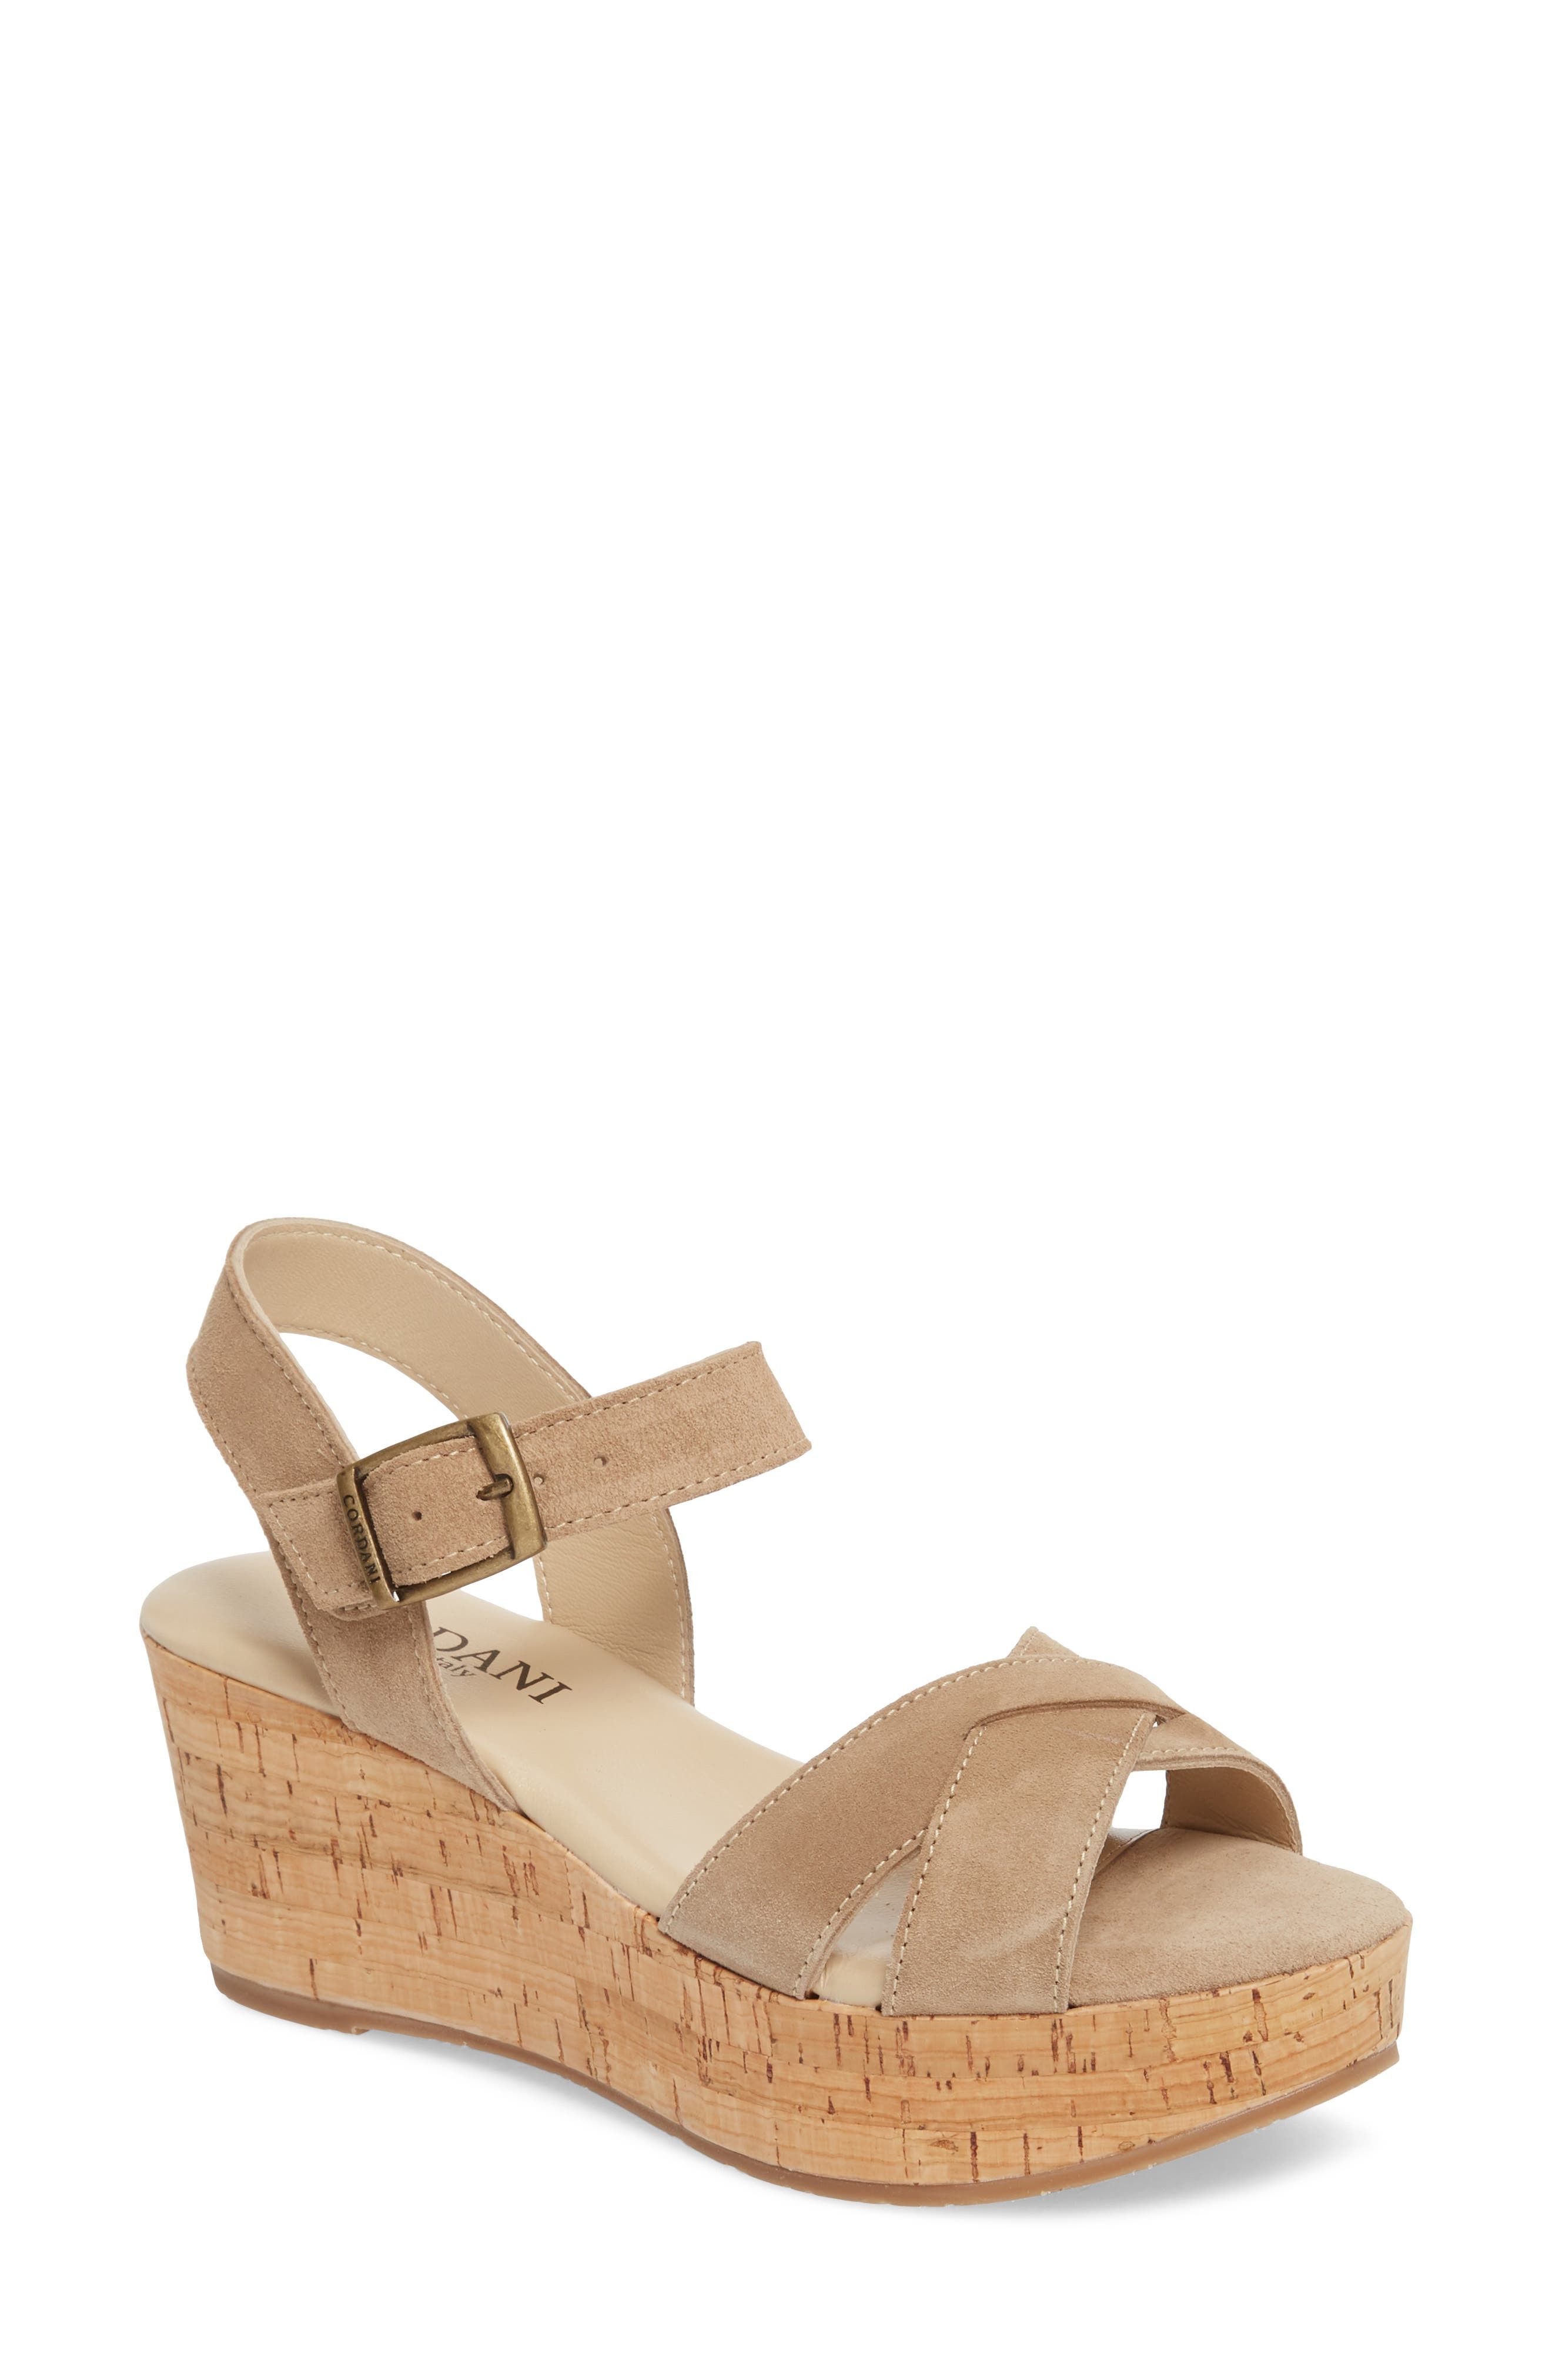 Candy Wedge Sandal,                             Main thumbnail 1, color,                             CORDA SUEDE